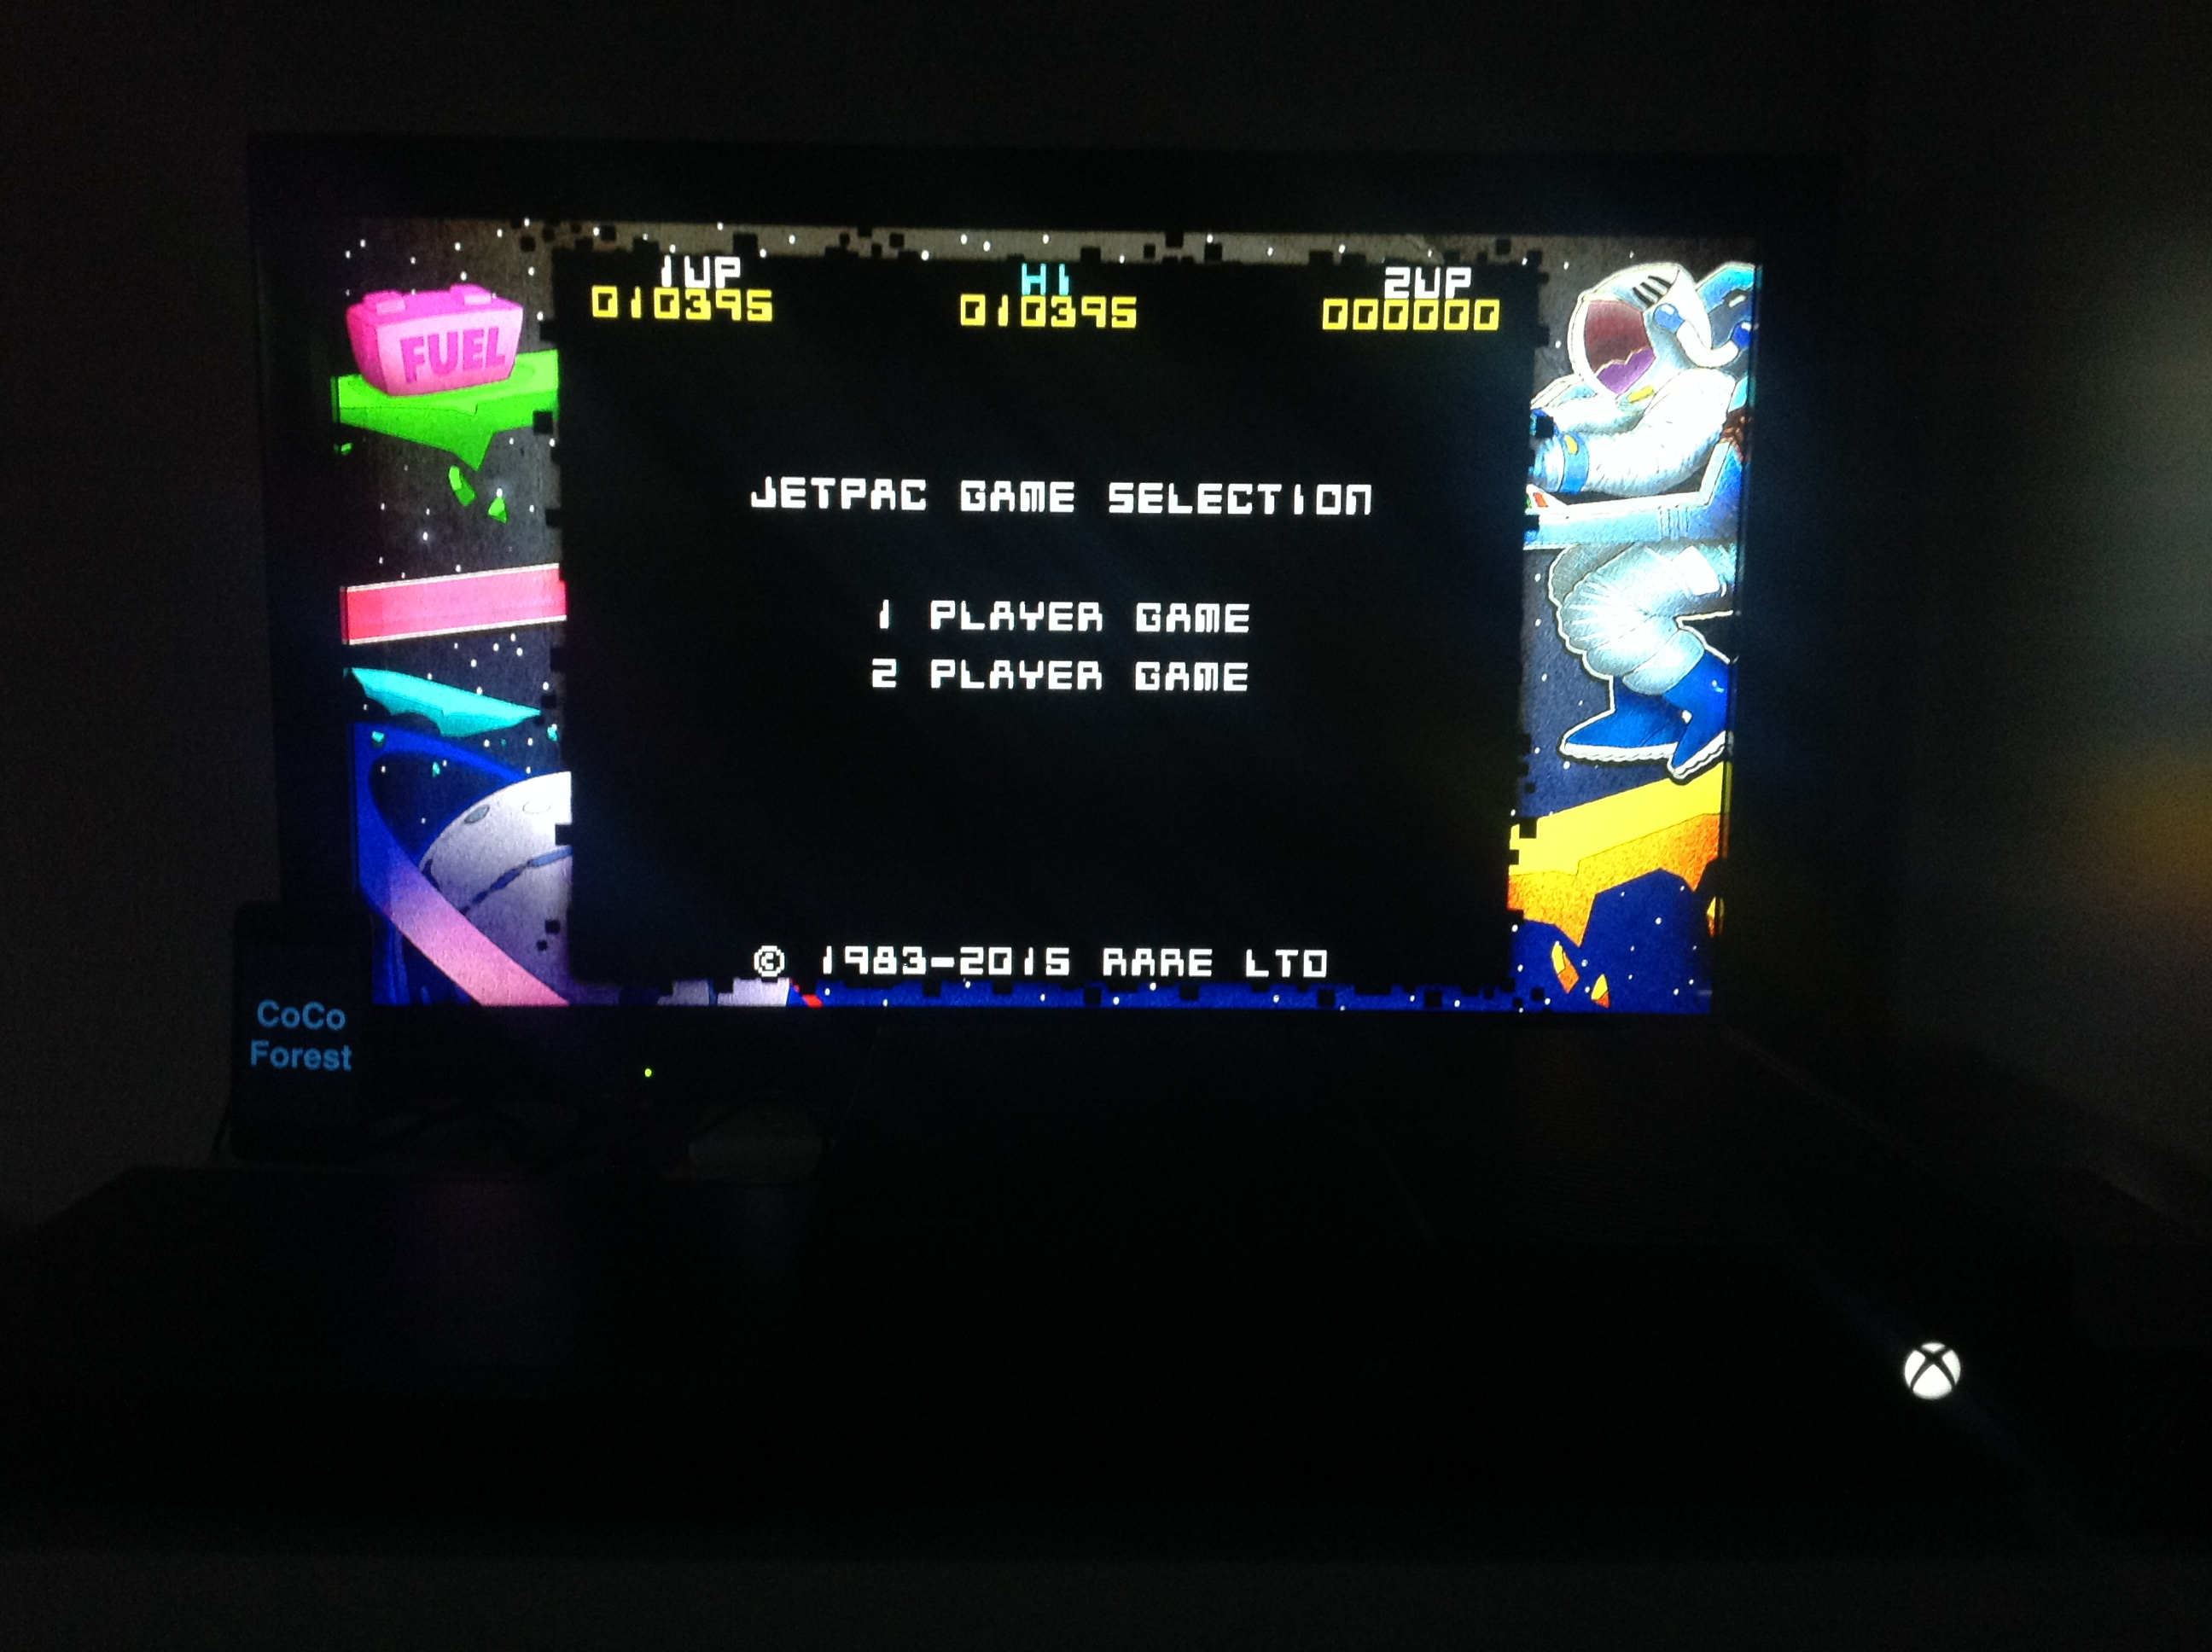 CoCoForest: Rare Replay: Jet Pac (Xbox One) 10,395 points on 2016-01-02 09:36:20